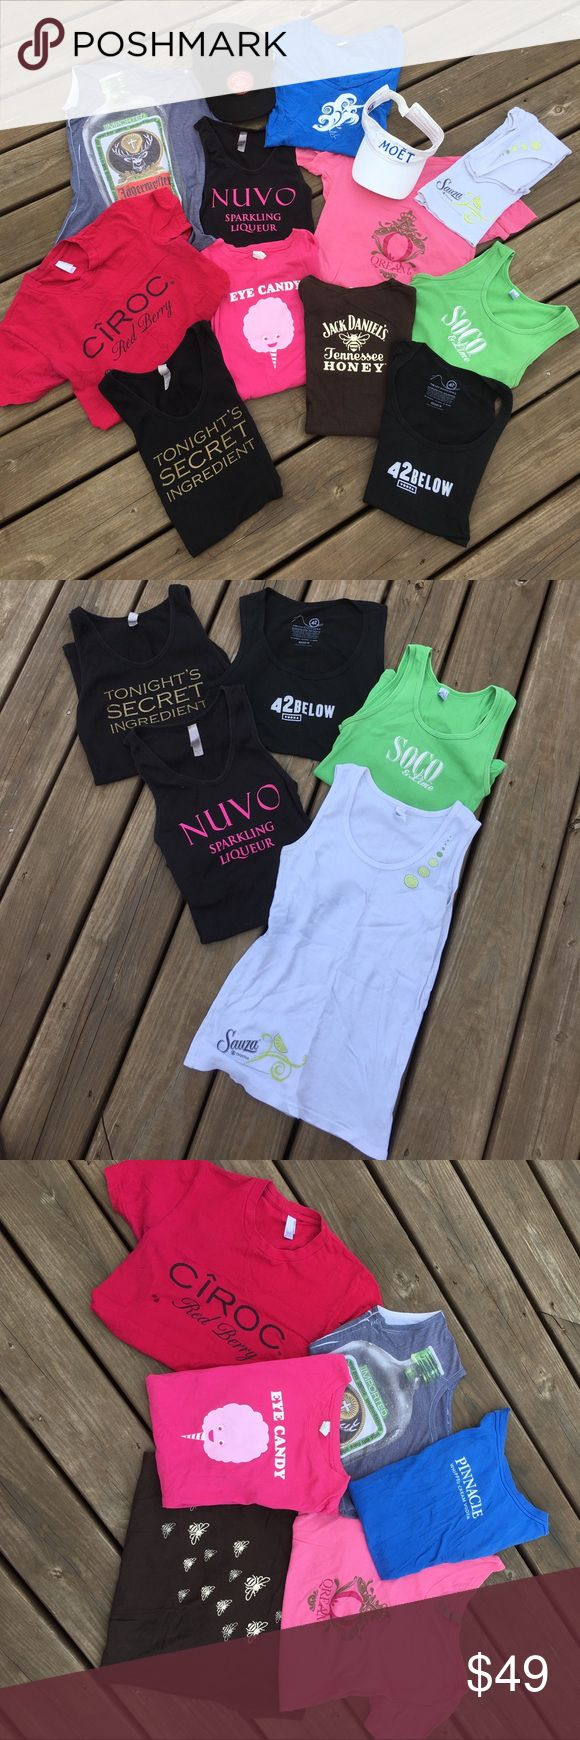 Liquor bundle size SML well worn liquor Apparel  💕jeremiah weed hat, 💕moët visor (stains discolor from wear) 💕sm Nuvo tank, 💕med Sauza  tank logo on bottom limes on left shoulder( light stain in front-barely noticeable) 💕med 42below tank💕med soco&lime tank💕 jägermeister tee (no tag looks like a med)💕med Qream tee💕med pinnacle tee💕med brown jack daniels honey tee( bees on front logo on back)💕med ciroc tee (stain will prob wash out)💕lg eye candy pinnacle tee(logo in back) 💕lg 43…